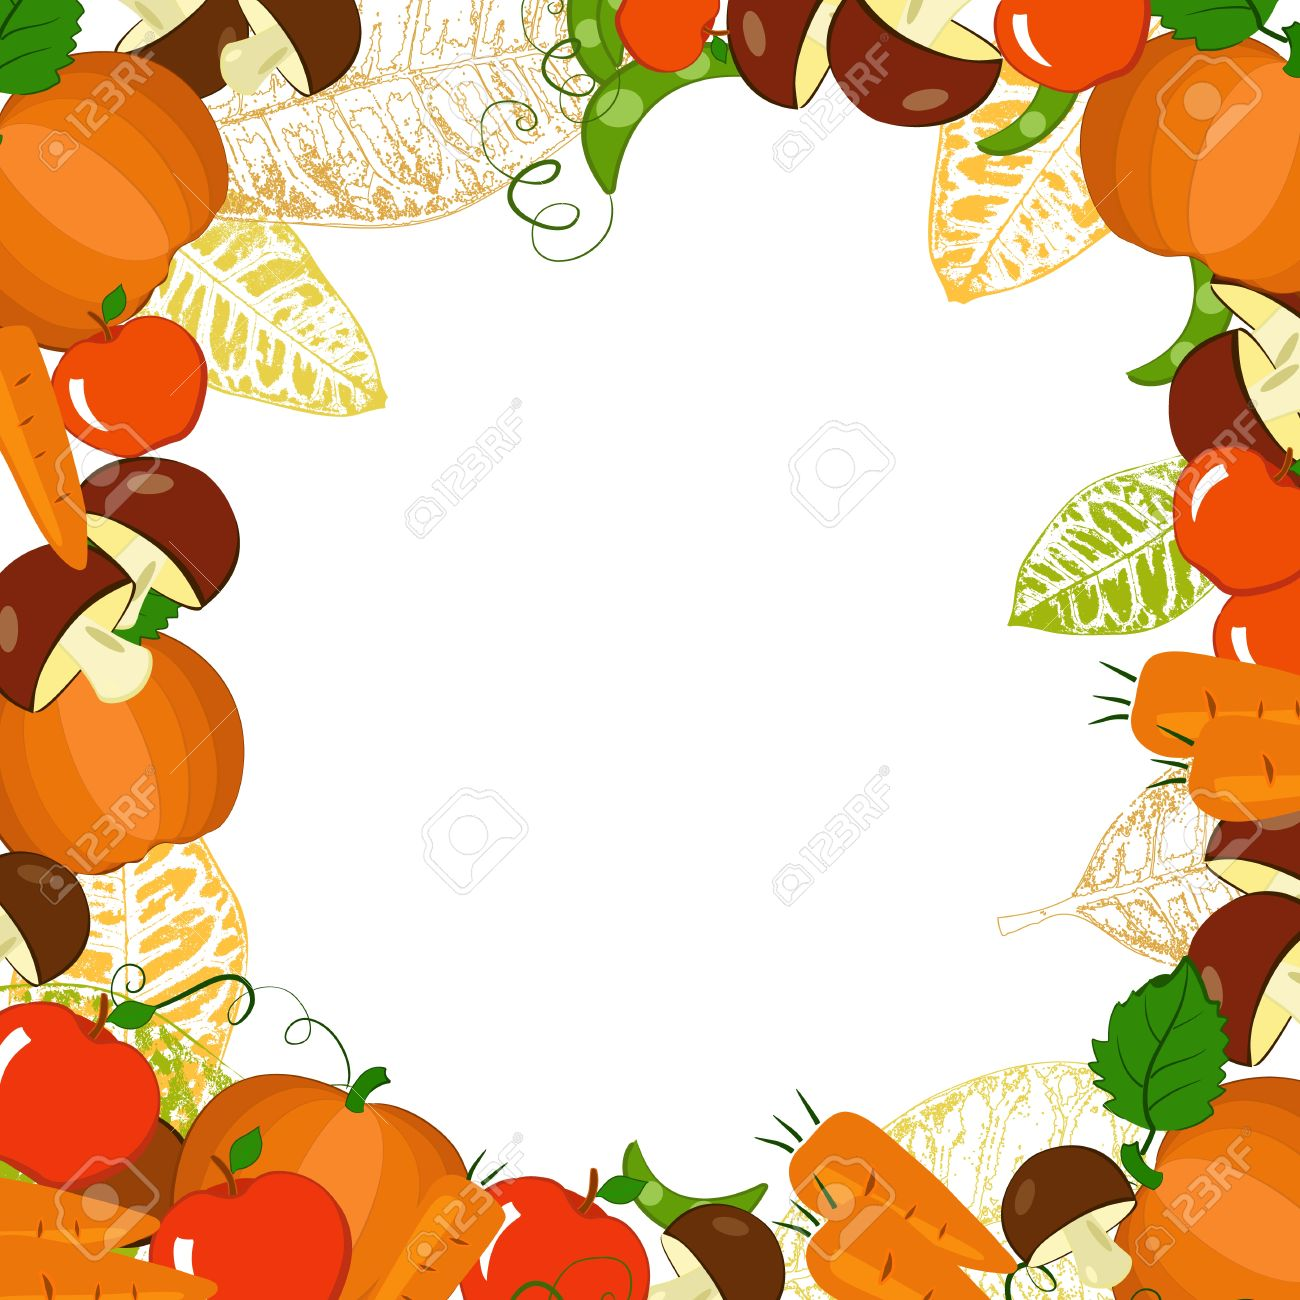 1300x1300 Frame With Autumn Vegetables And Leaves Royalty Free Cliparts